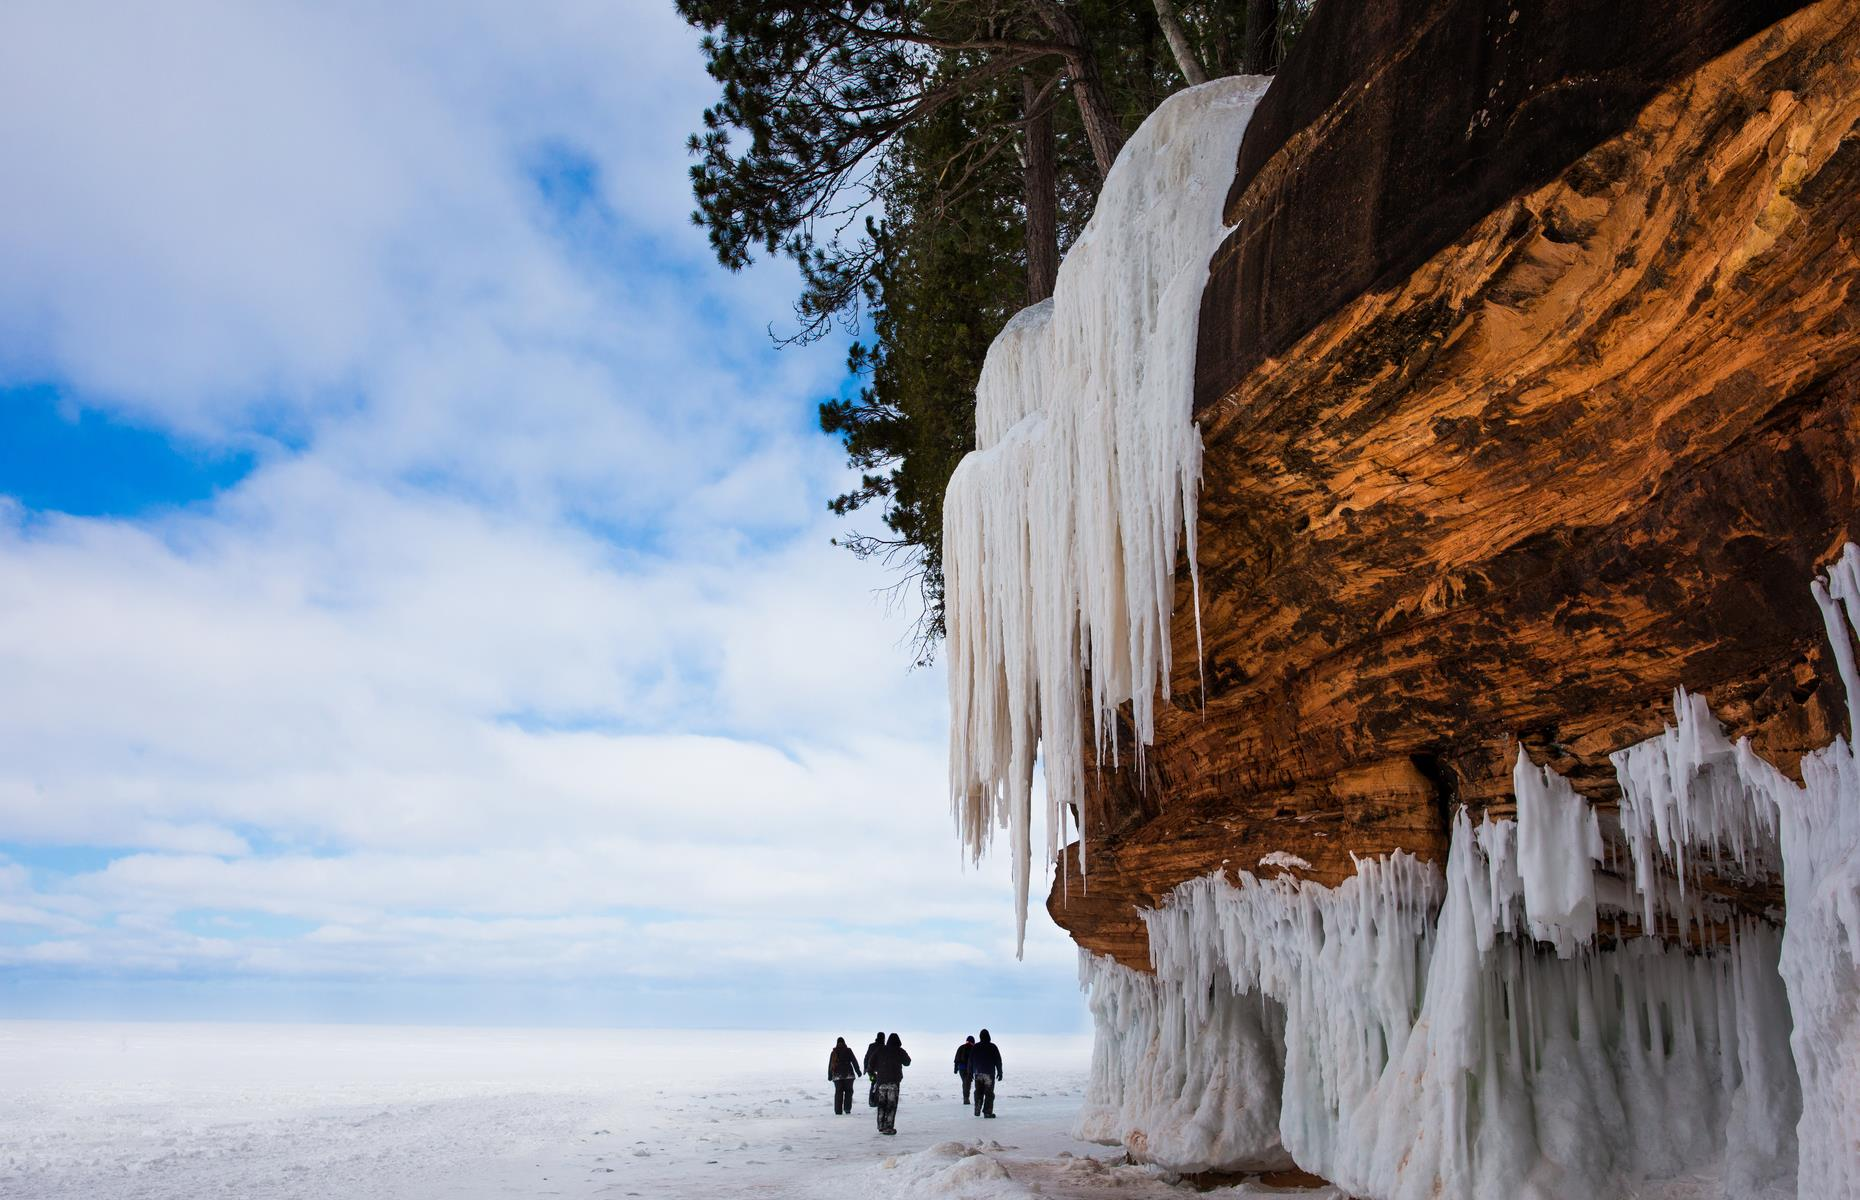 Slide 30 of 61: Apostle Islands National Lakeshore boasts all manner of natural wonders, from craggy rock formations and wind-battered cliffs to sandy strands – but none are more intriguing than the ice caves that form here each winter. The caves are accessible from a trail beginning at the Meyers Beach parking area and winding downwards (you'll walk up to sixmiles (9.6km) in total depending on how many of the caves you take in). Their opening times are entirely dependent on weather conditions and of course COVID-19 socheck the NPS website if you're planning a visit.